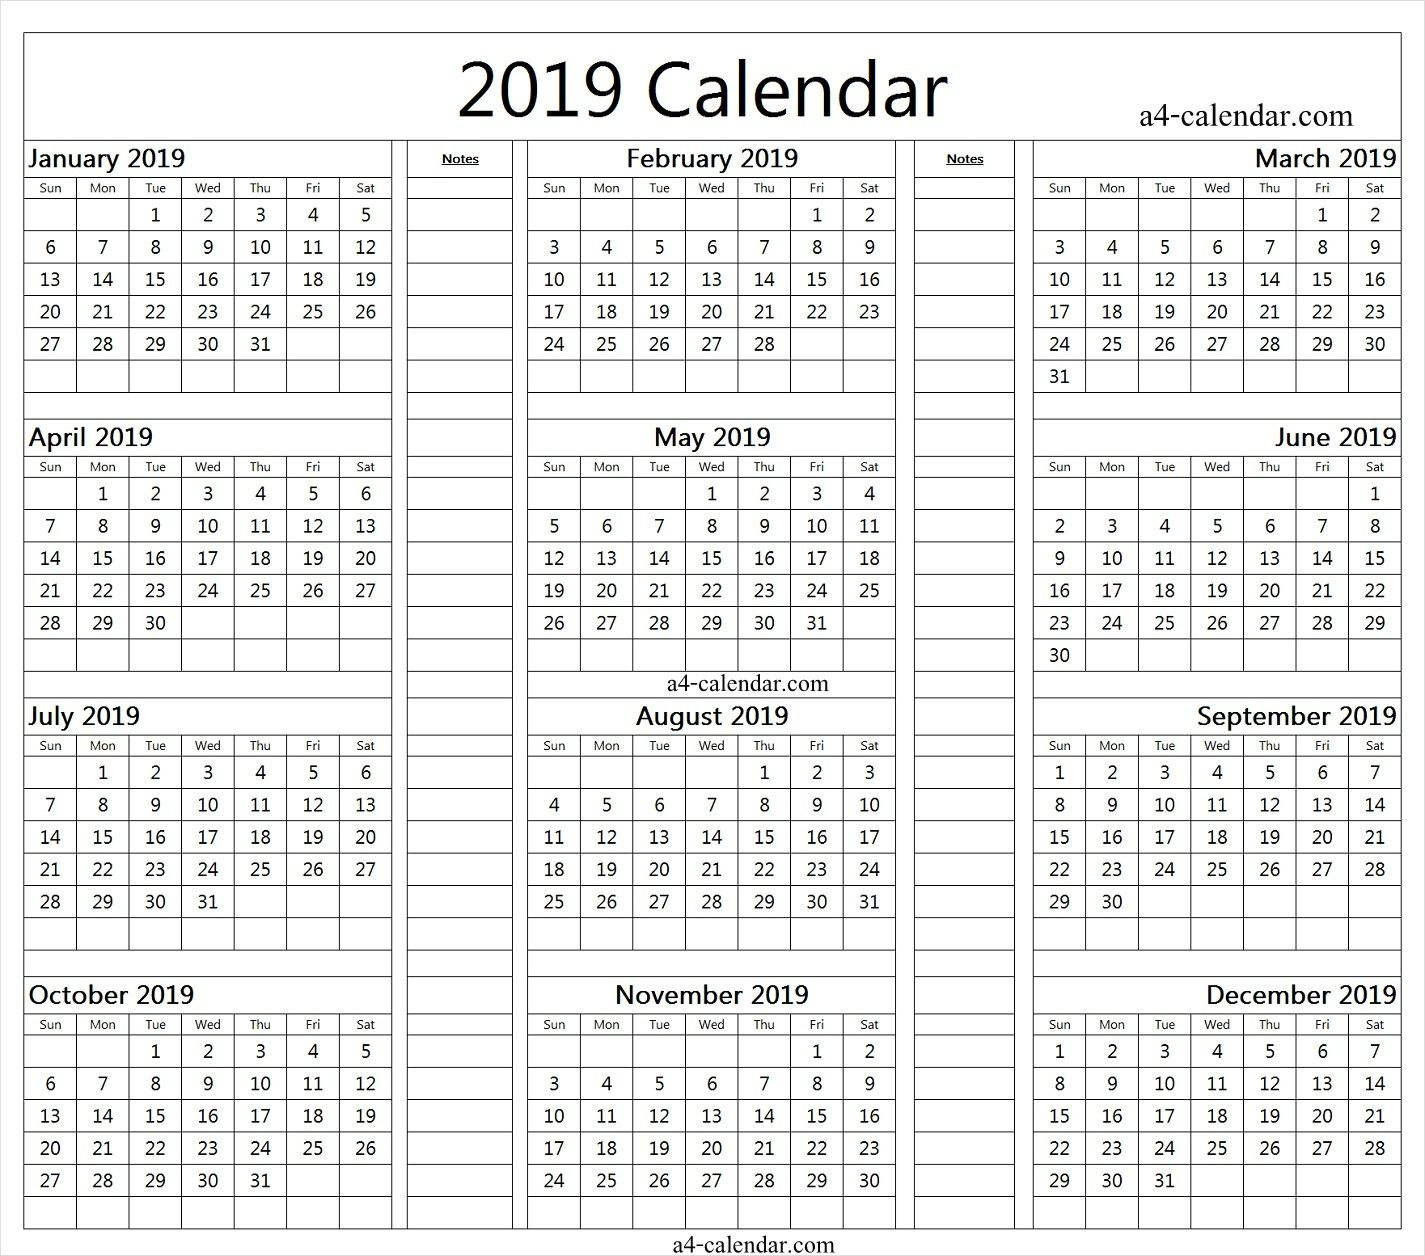 2019 Yearly Calendar With Notes | Yearly Calendar, Blank